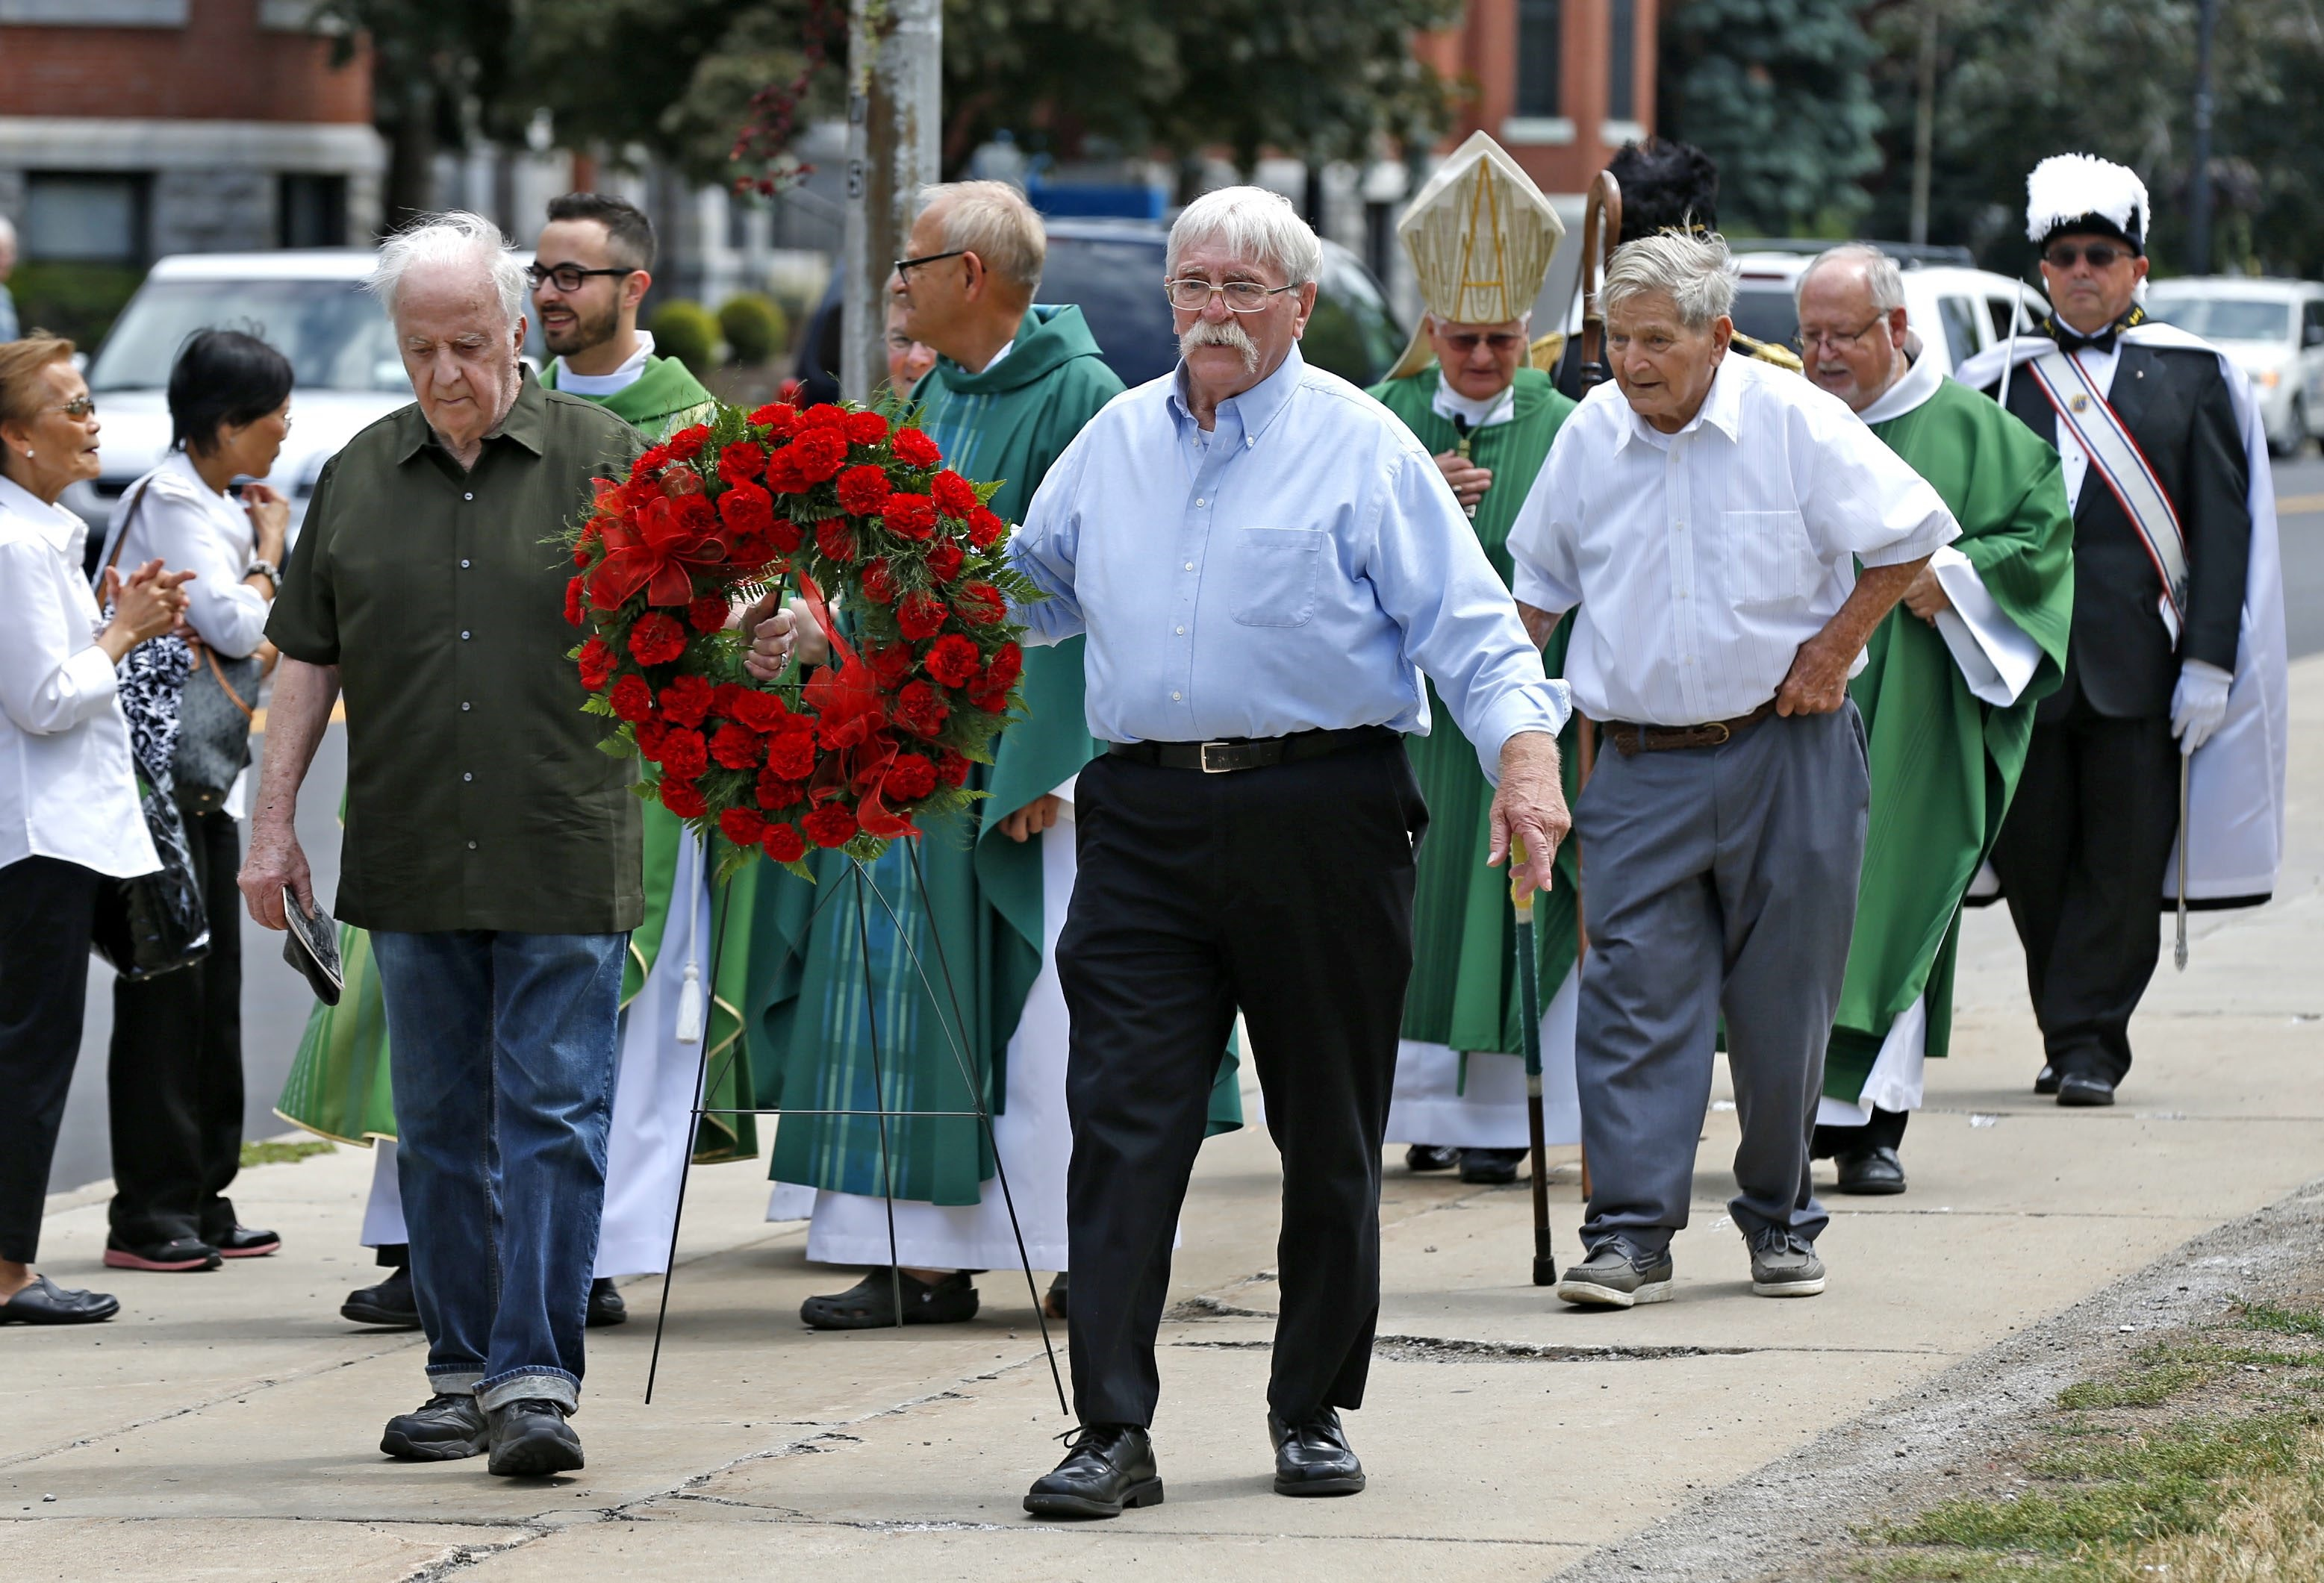 Joe Kelley (left front) took part last summer in a memorial Mass for Father Nelson Baker, at Our Lady of Victory National Shrine and Basilica in Lackawanna. Buffalo's Irish-American community is about to celebrate its first St. Patrick's Day in 88 years without Kelley, who was raised at Father Baker's orphanage and became a Western New York champion of Irish culture. (Robert Kirkham/Buffalo News)